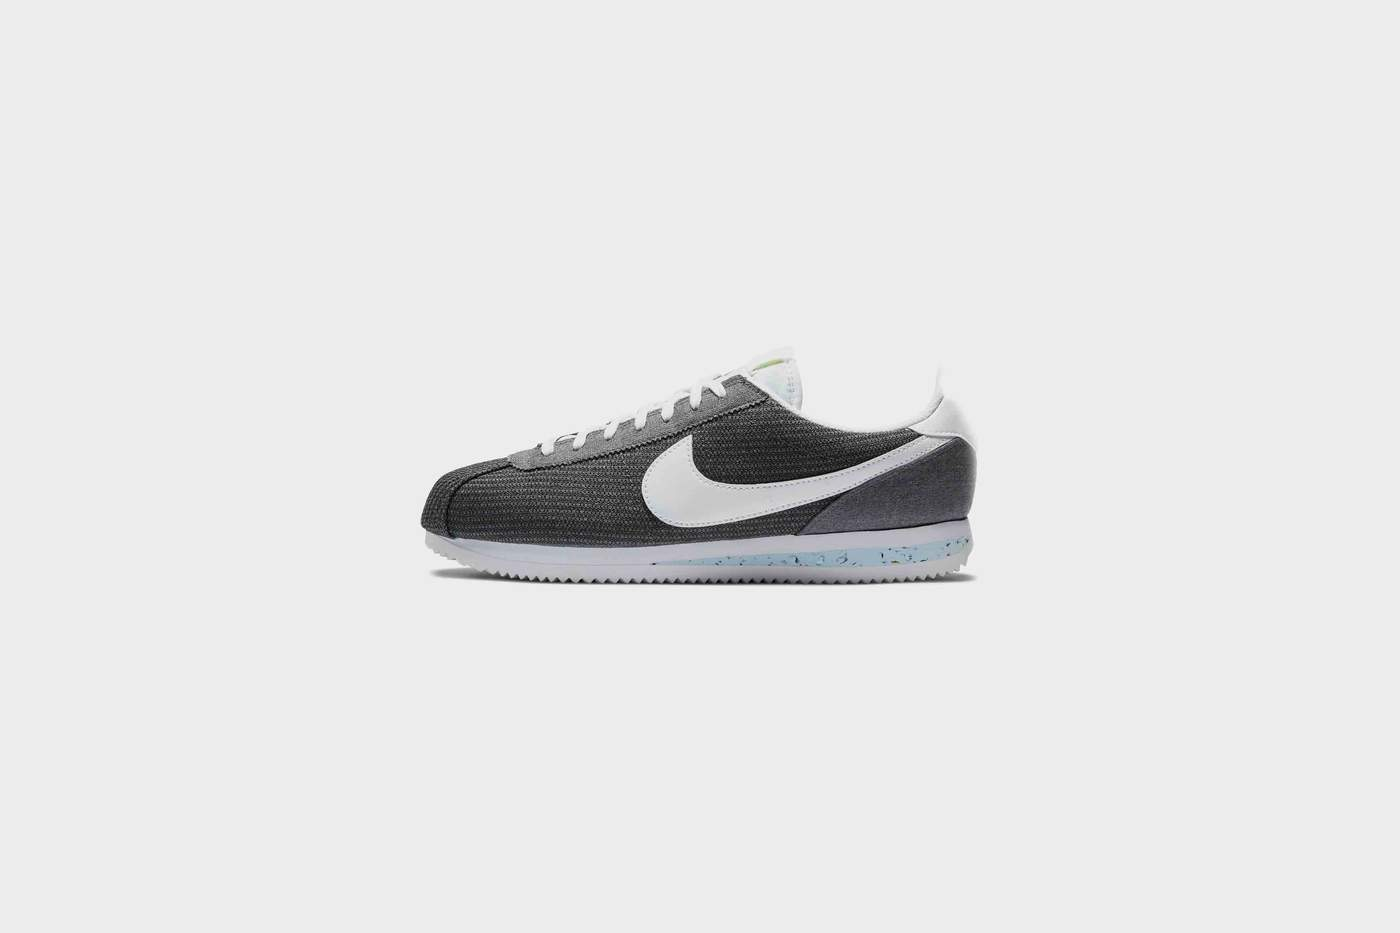 Nike Cortez Basic Premium - Iron Grey/White/Barely Volt #CQ6663-001-Preorder Item-Navy Selected Shop